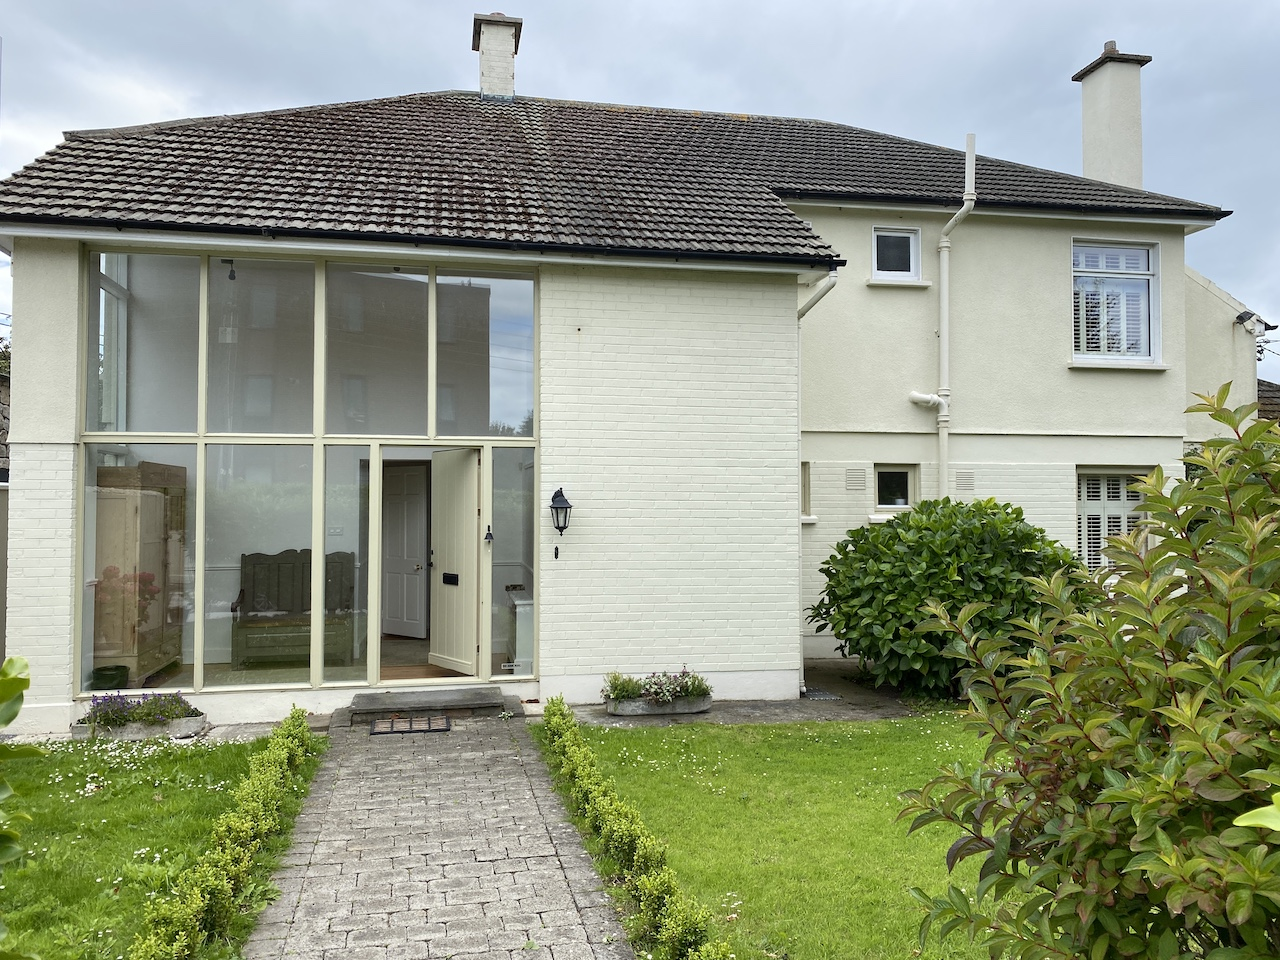 DALKEY FOR SALE – 4 to 5 Bedroom Detached Family Home